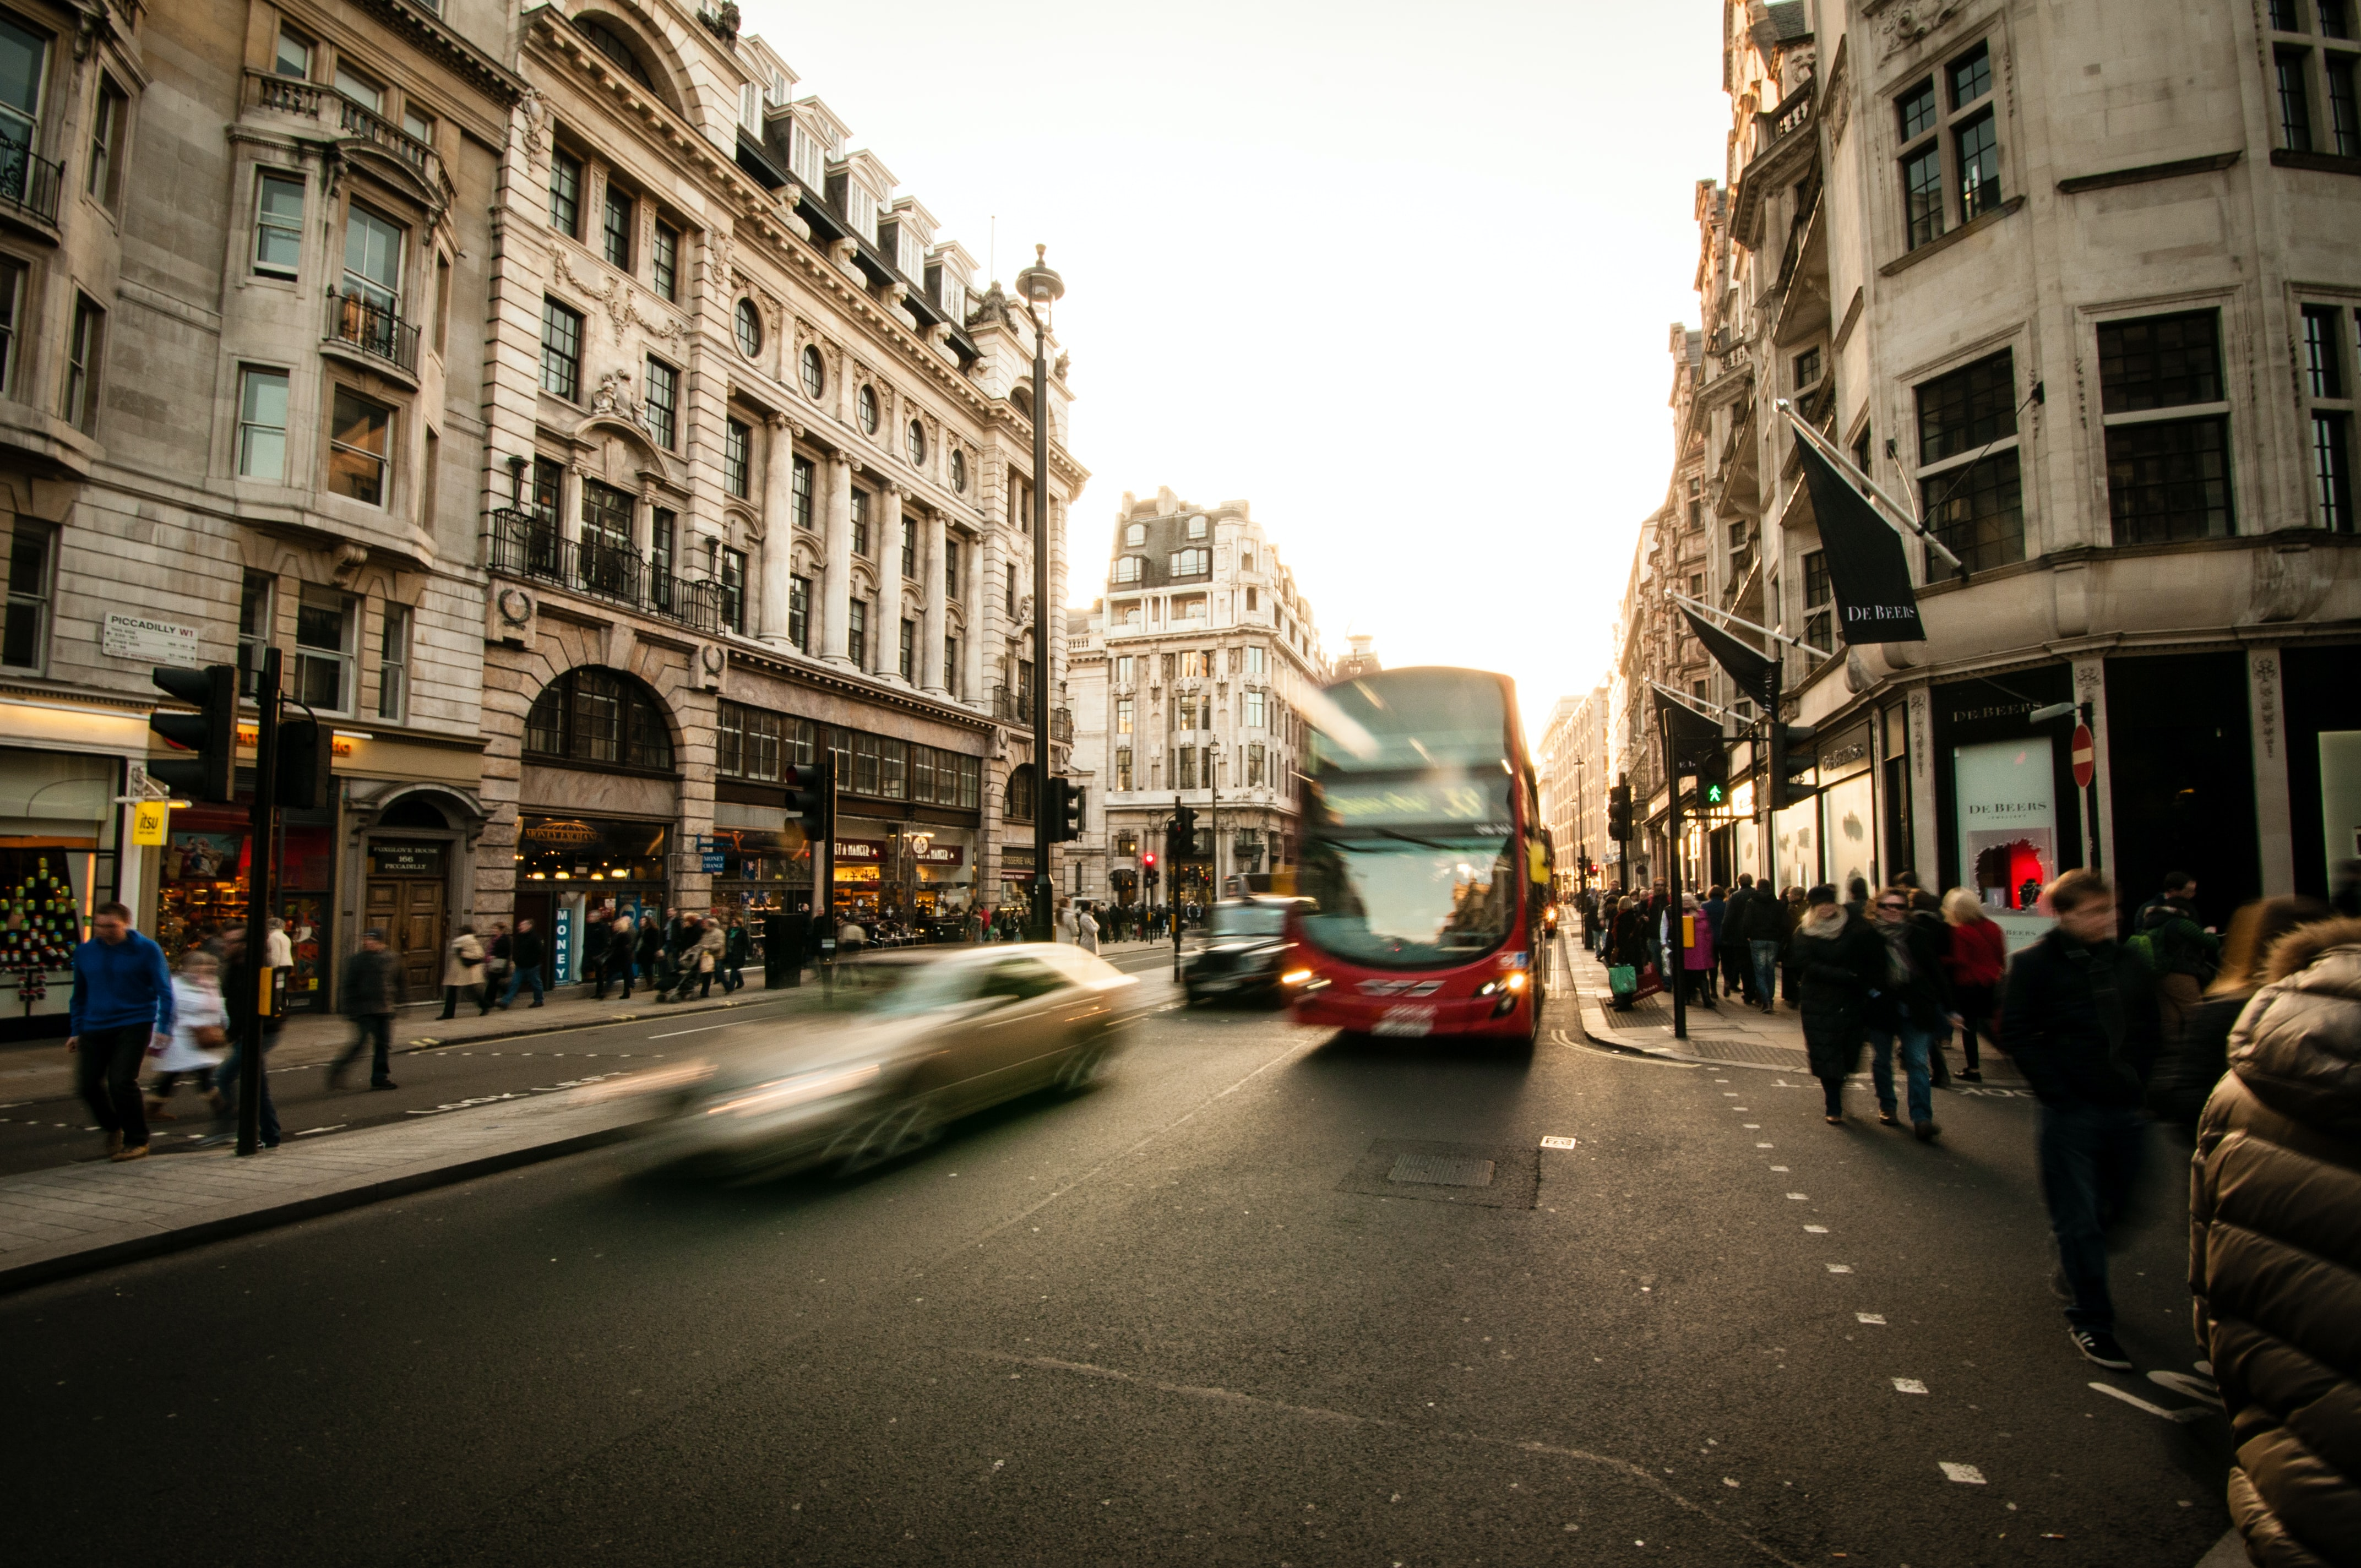 Time lapse shot of busy London street, silver car, red double decker bus pedestrians on sidewalk